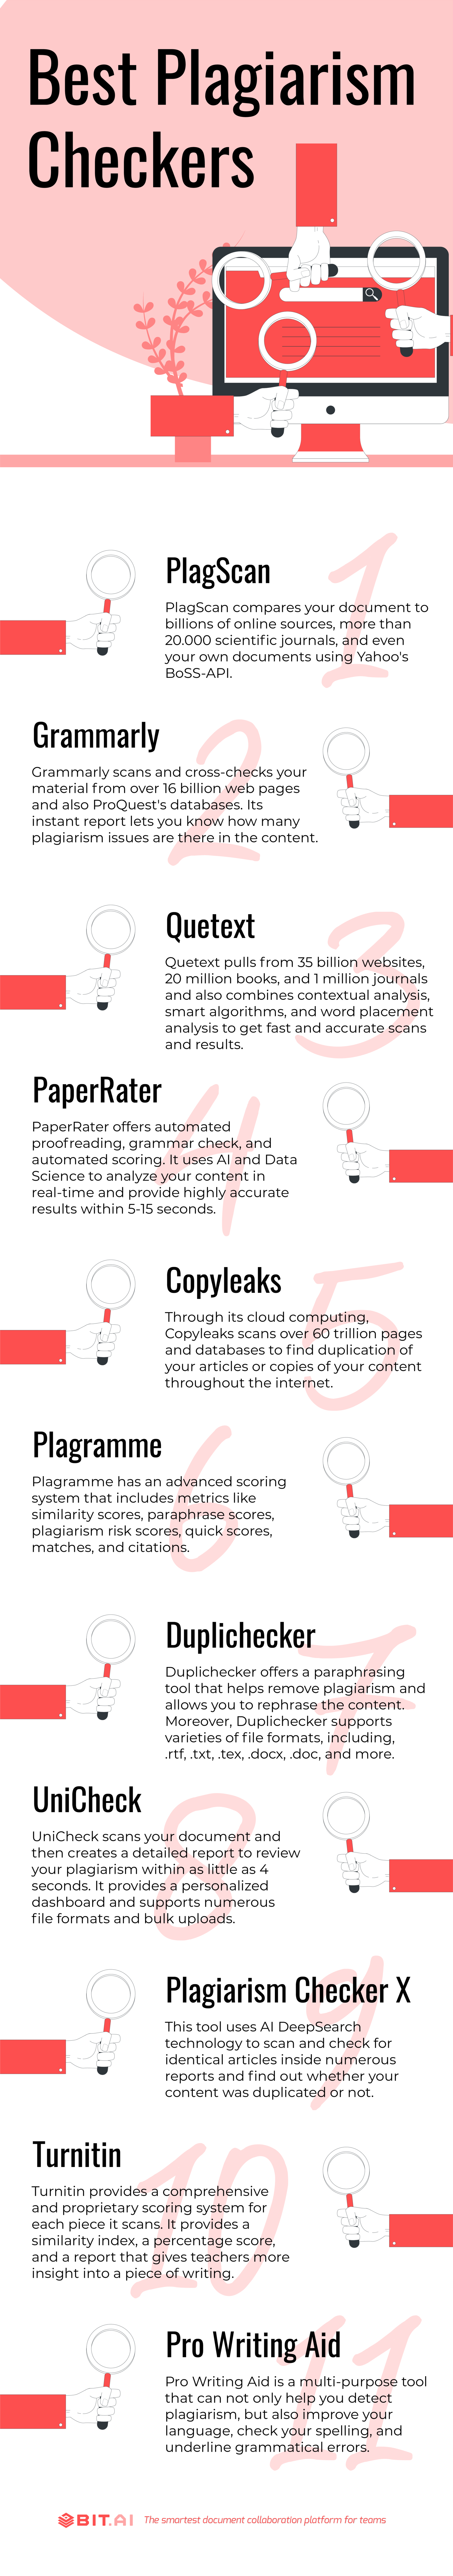 Plagiarism checker infographic